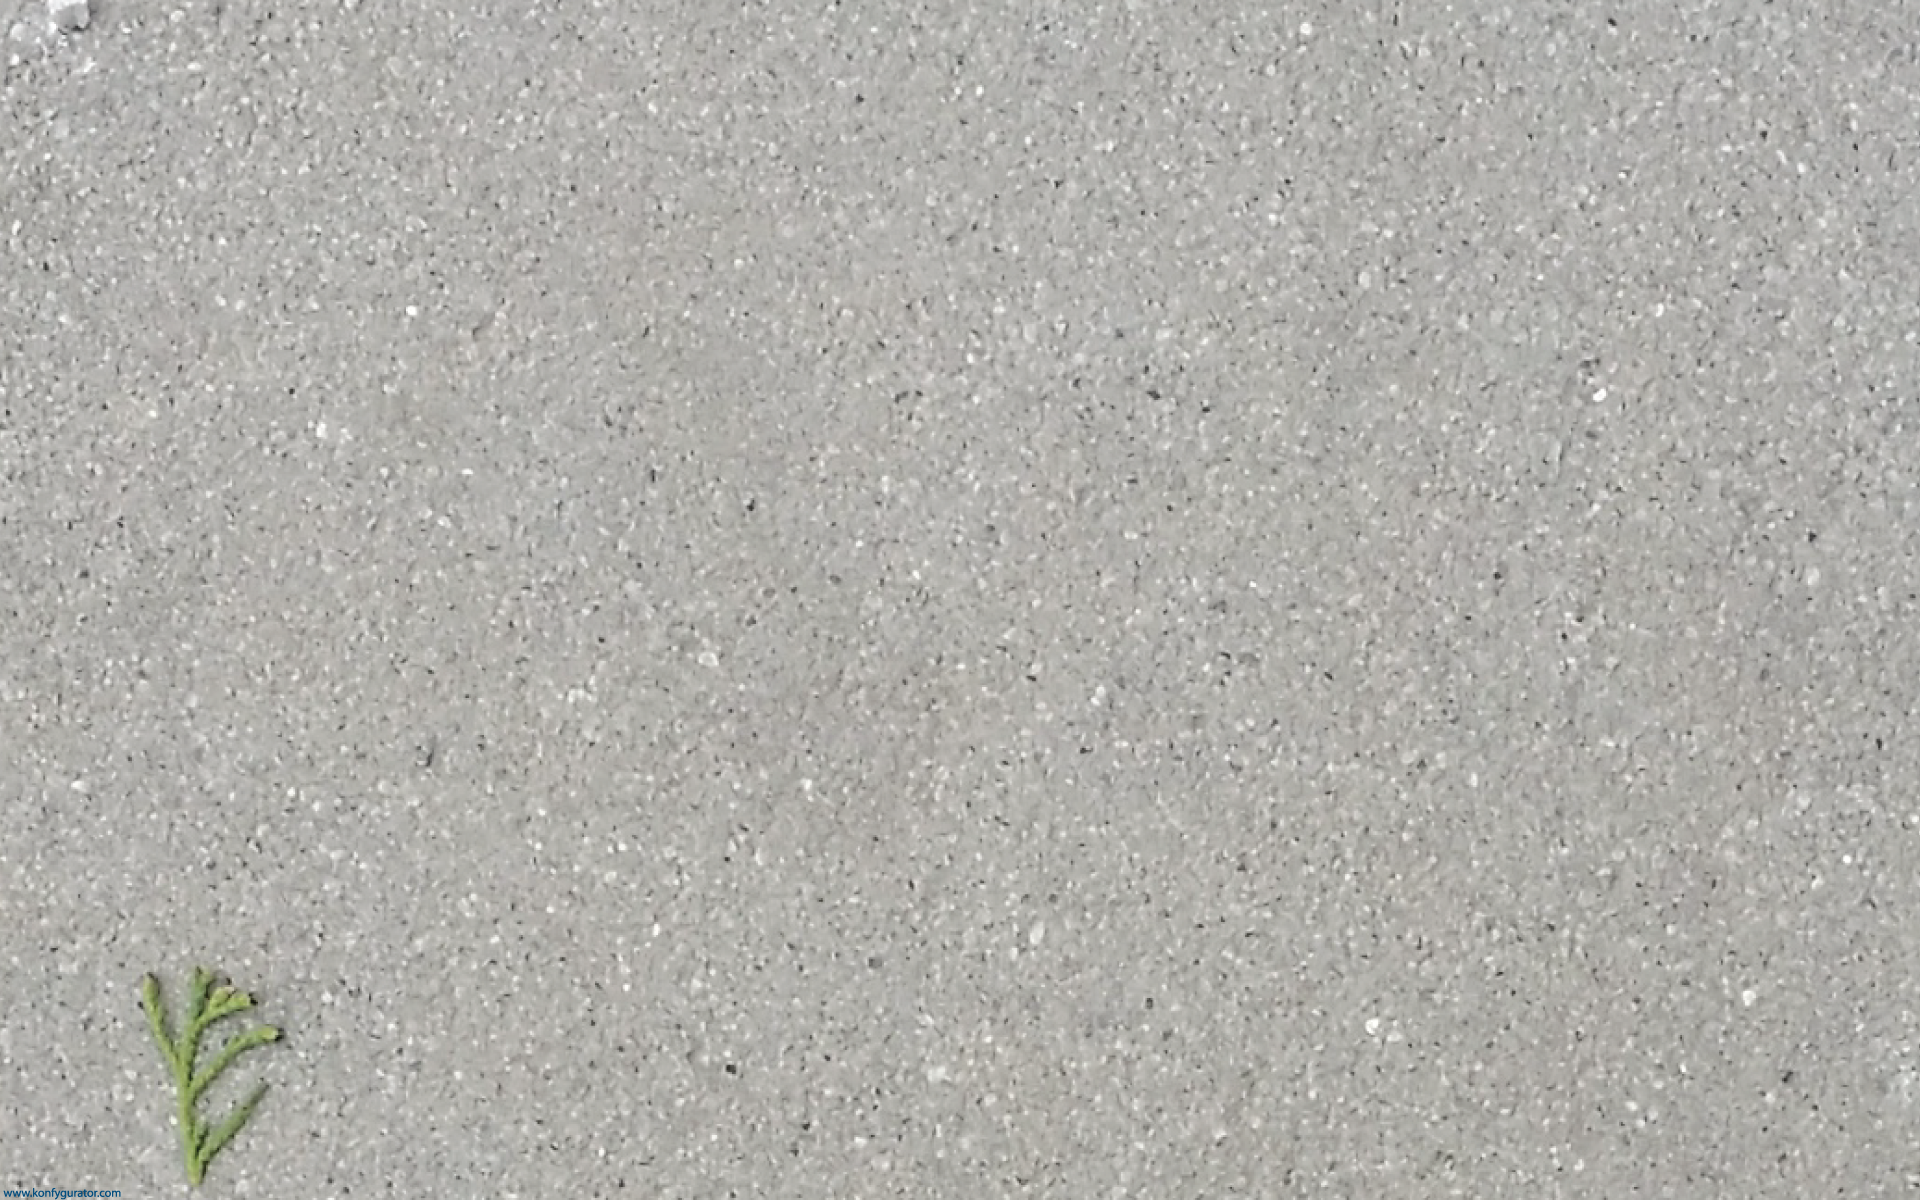 HD Wallpapers - Textures -light, gray, concrete